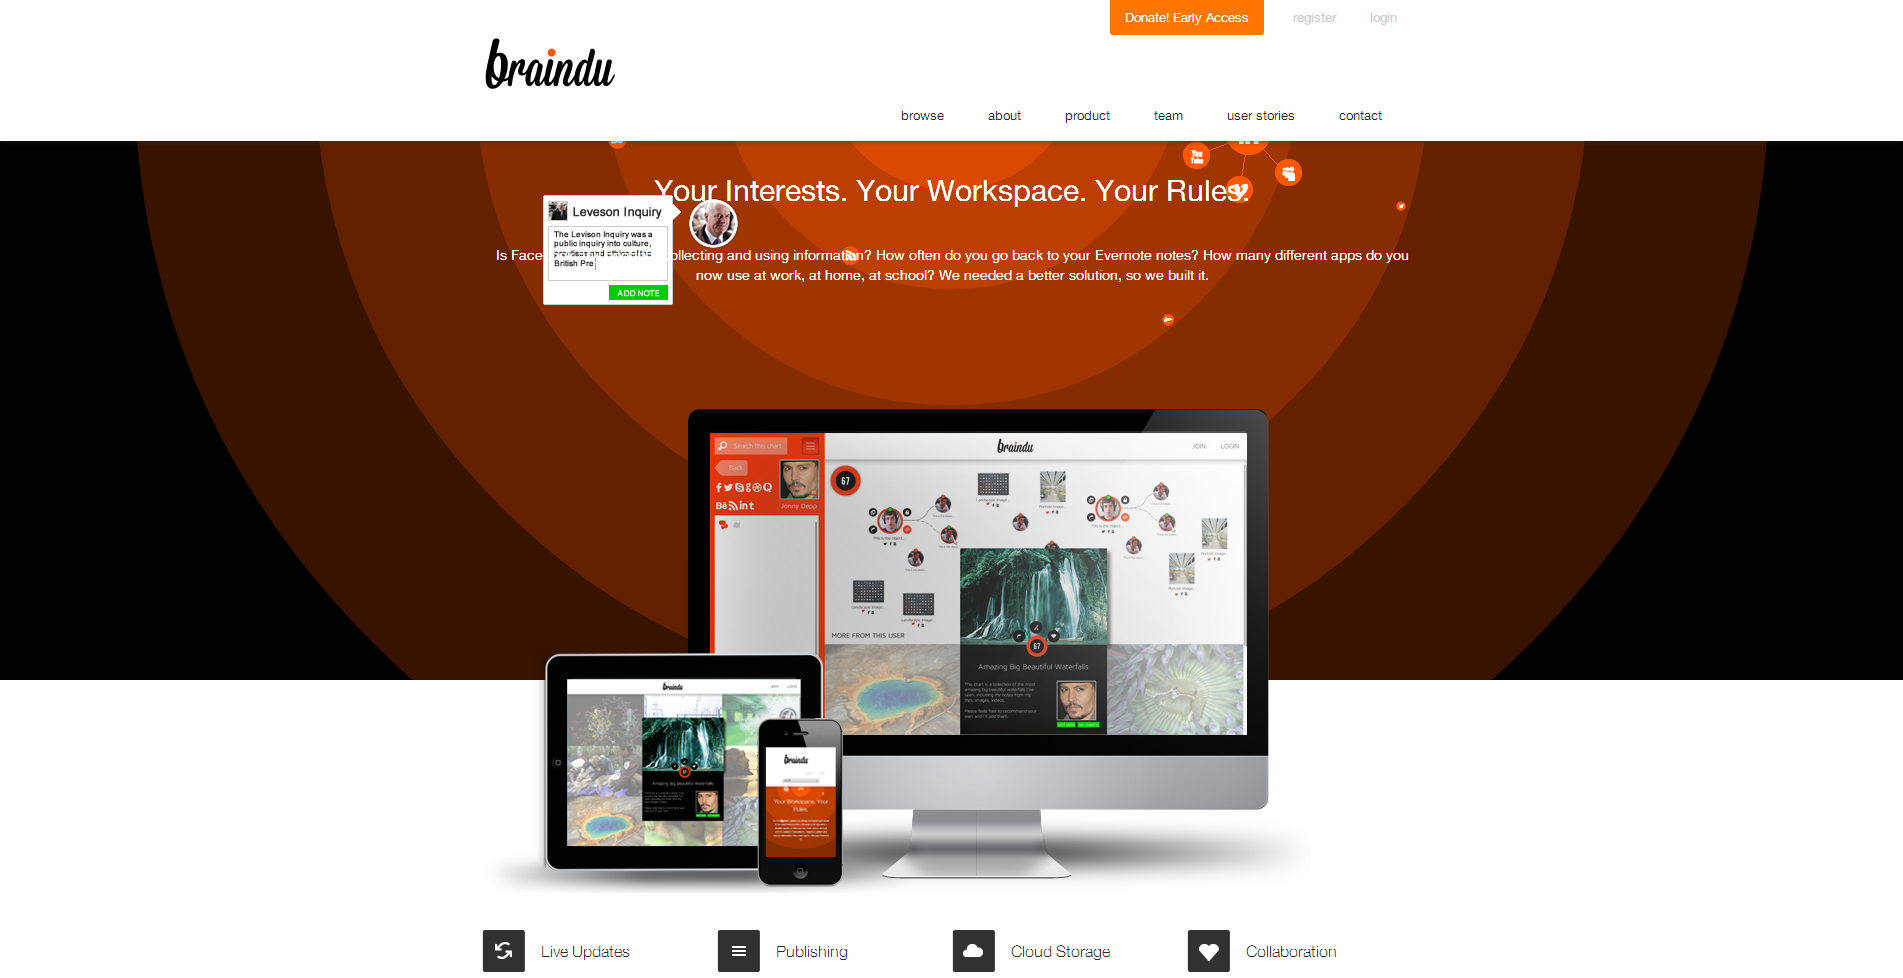 The Braindu Product Website